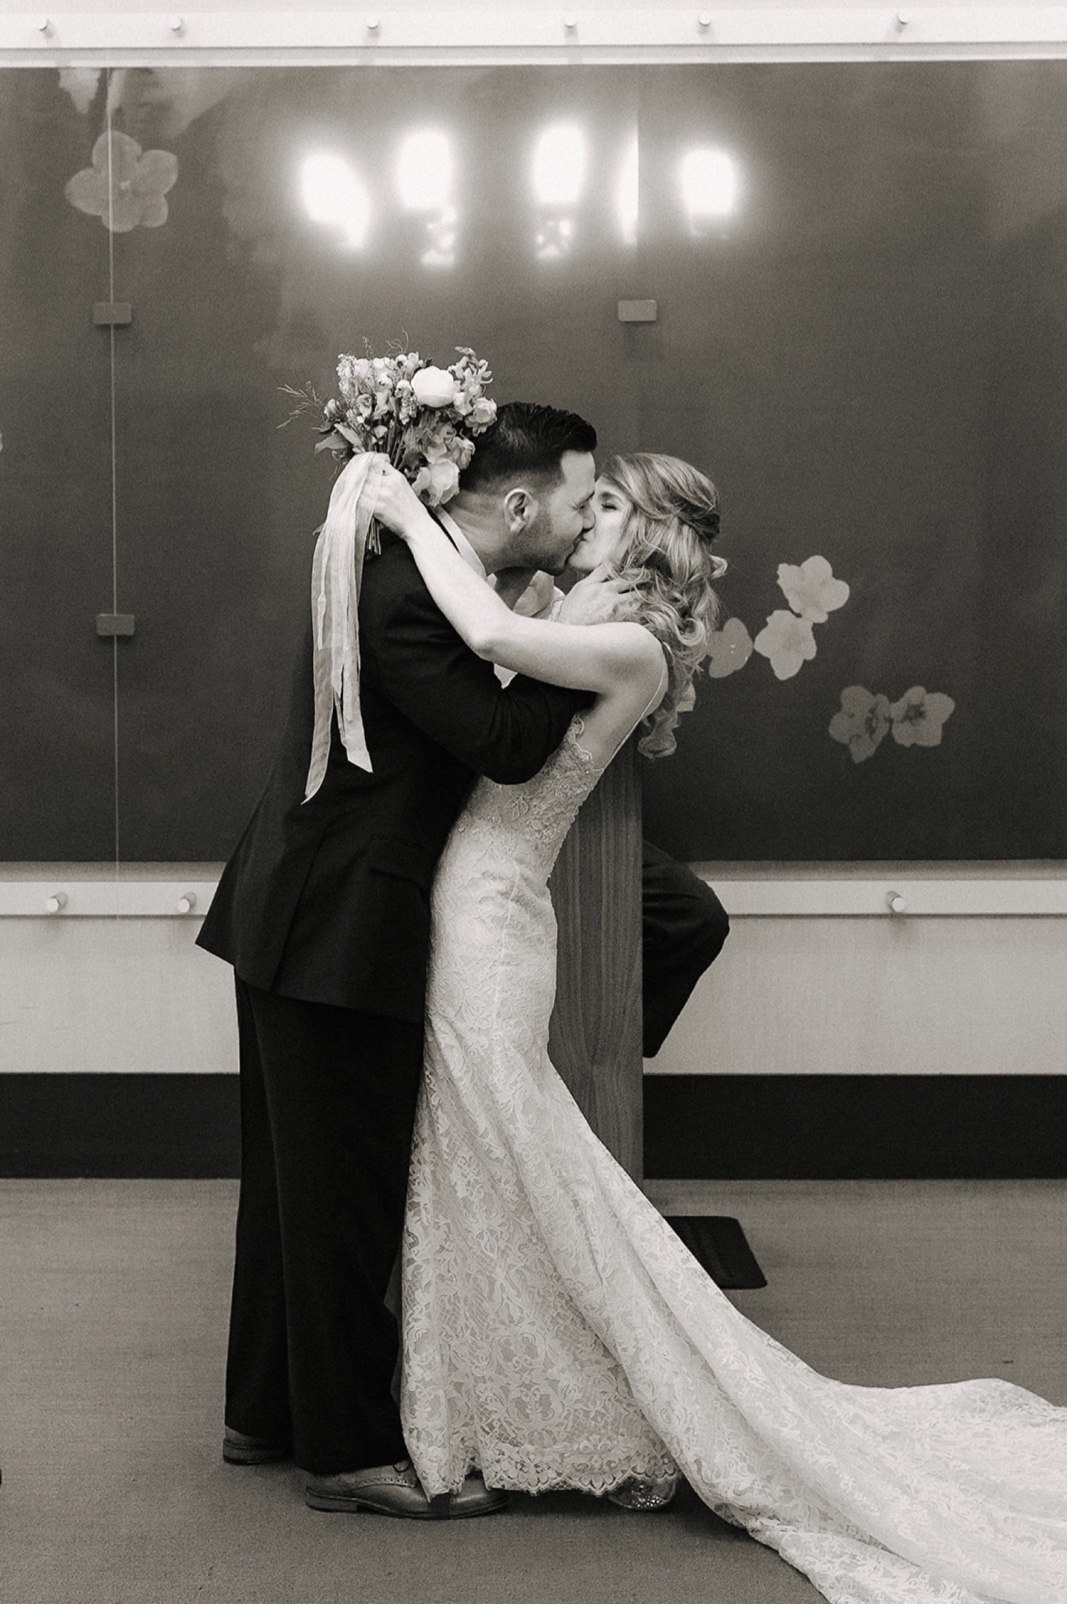 60_nyc_elopement_photography_wedding_intimate.jpg